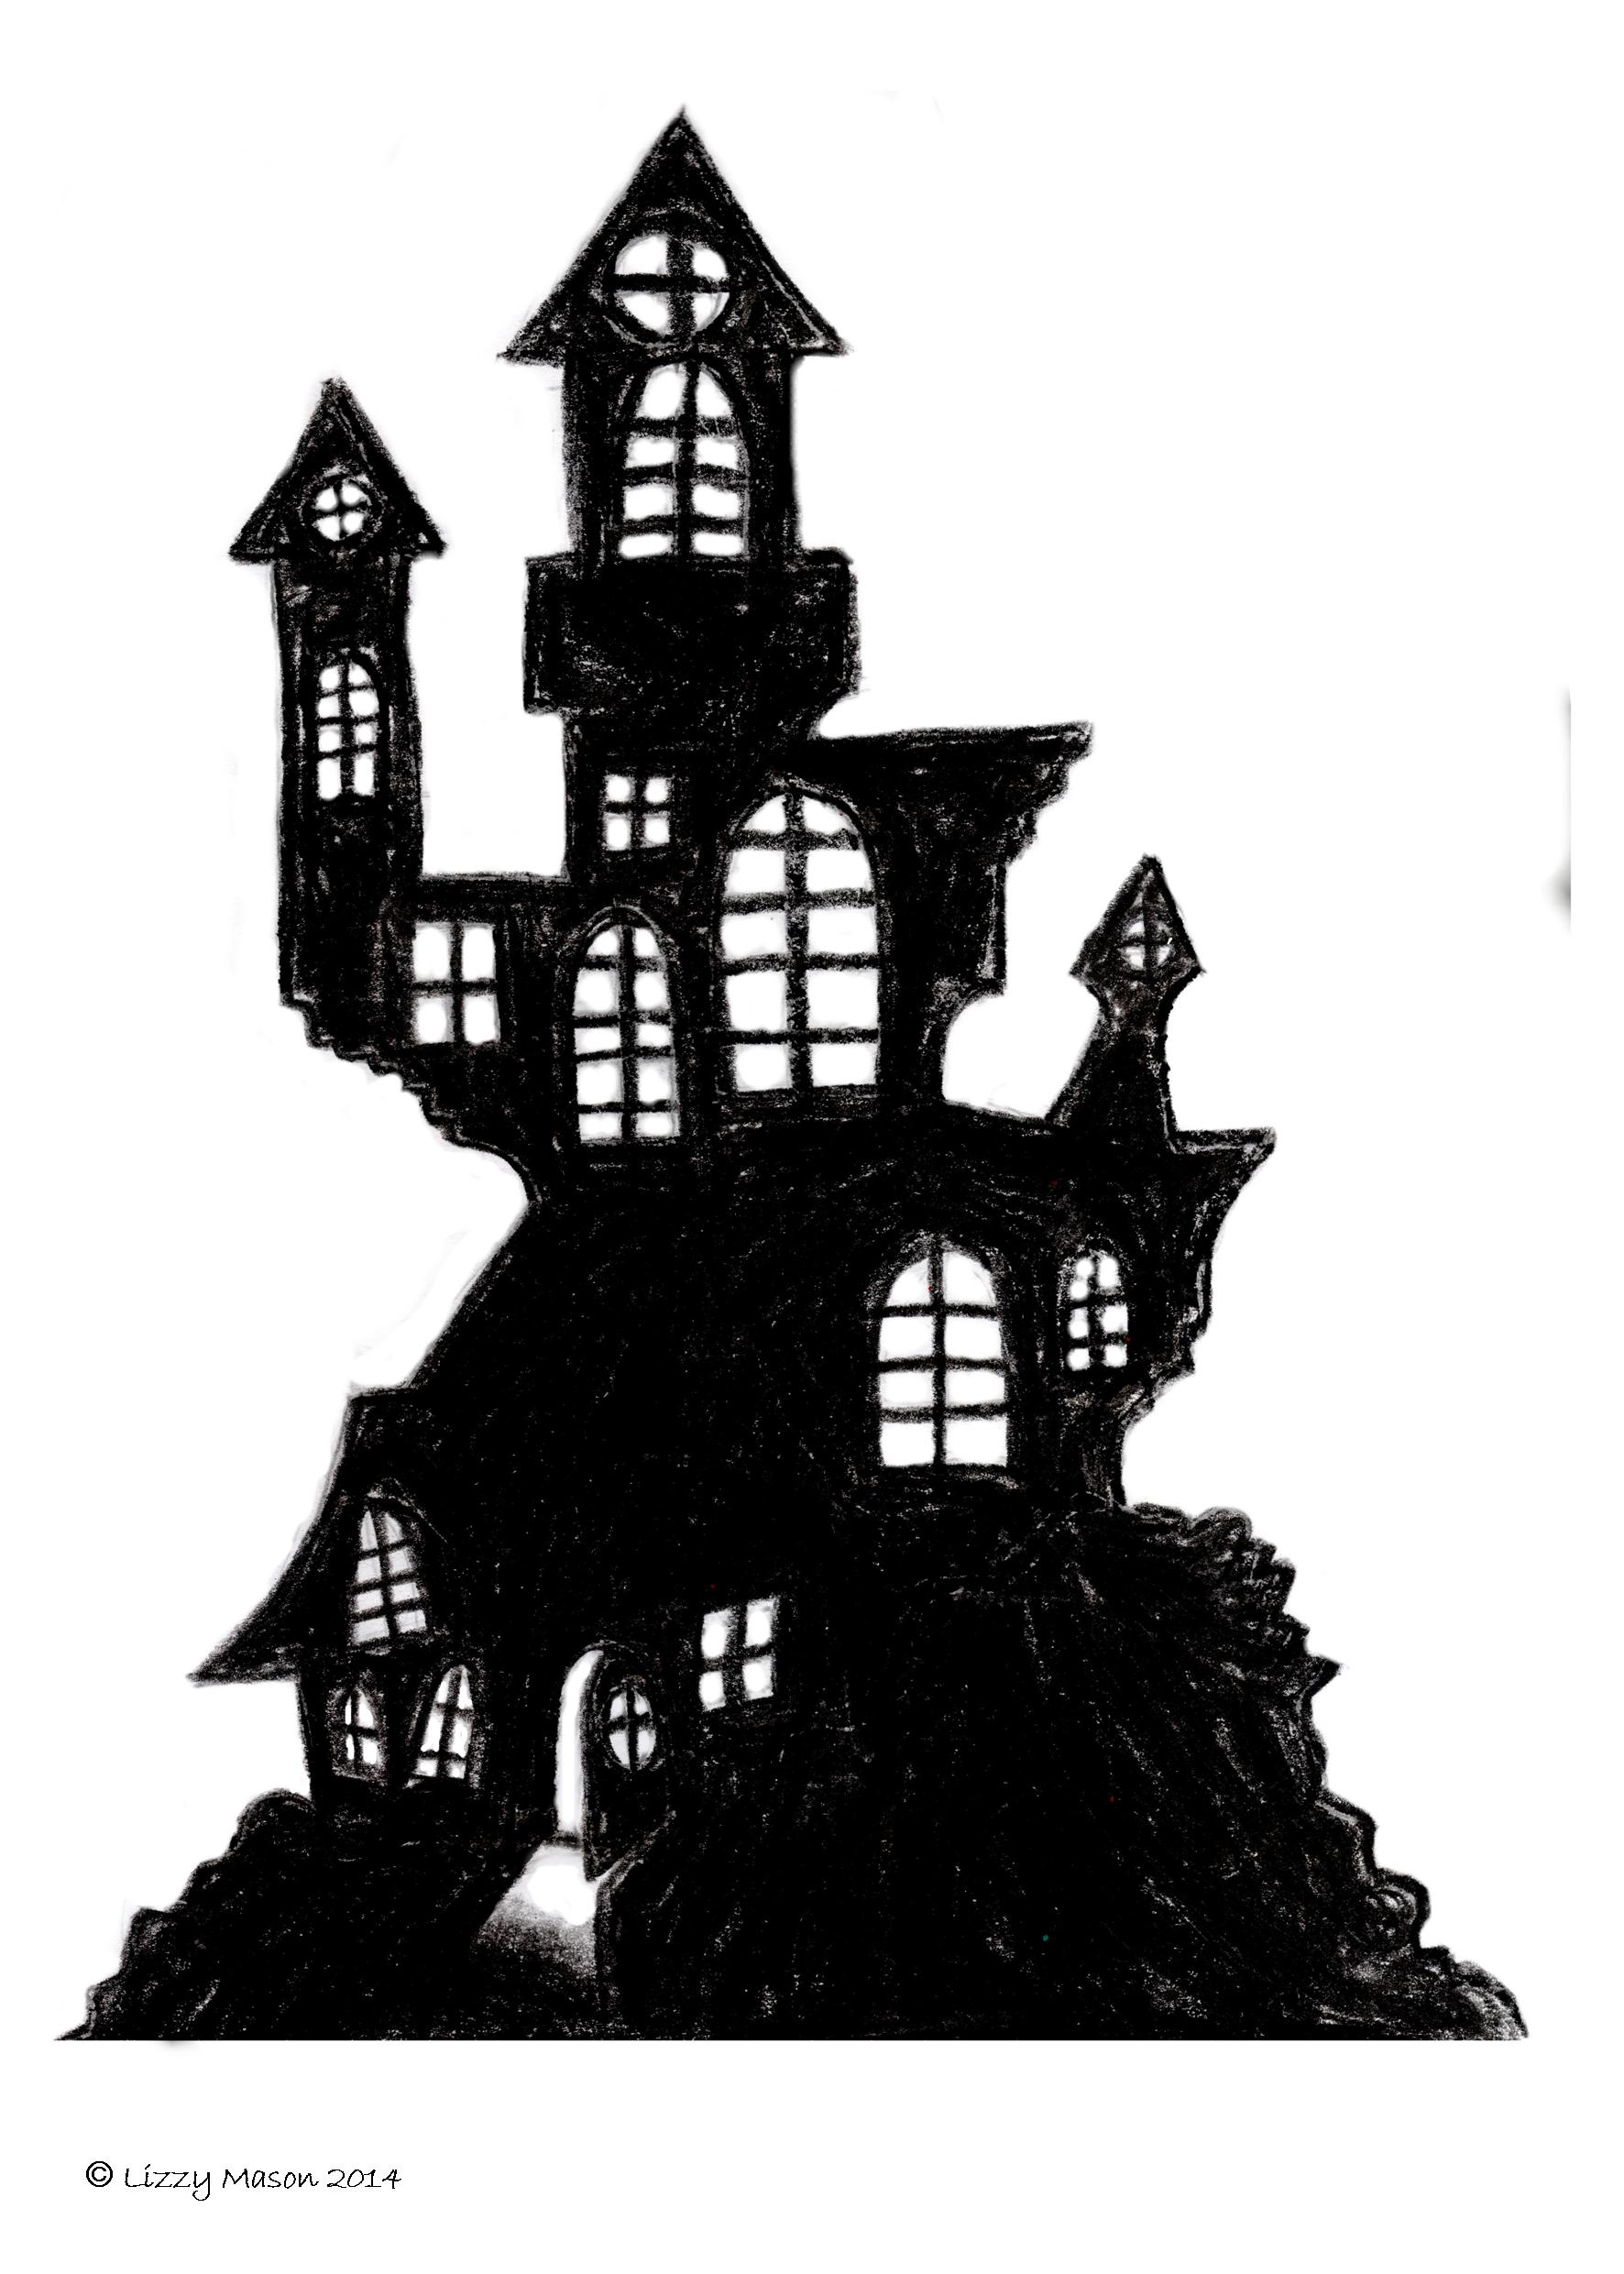 It's just a photo of Playful Haunted House Printable